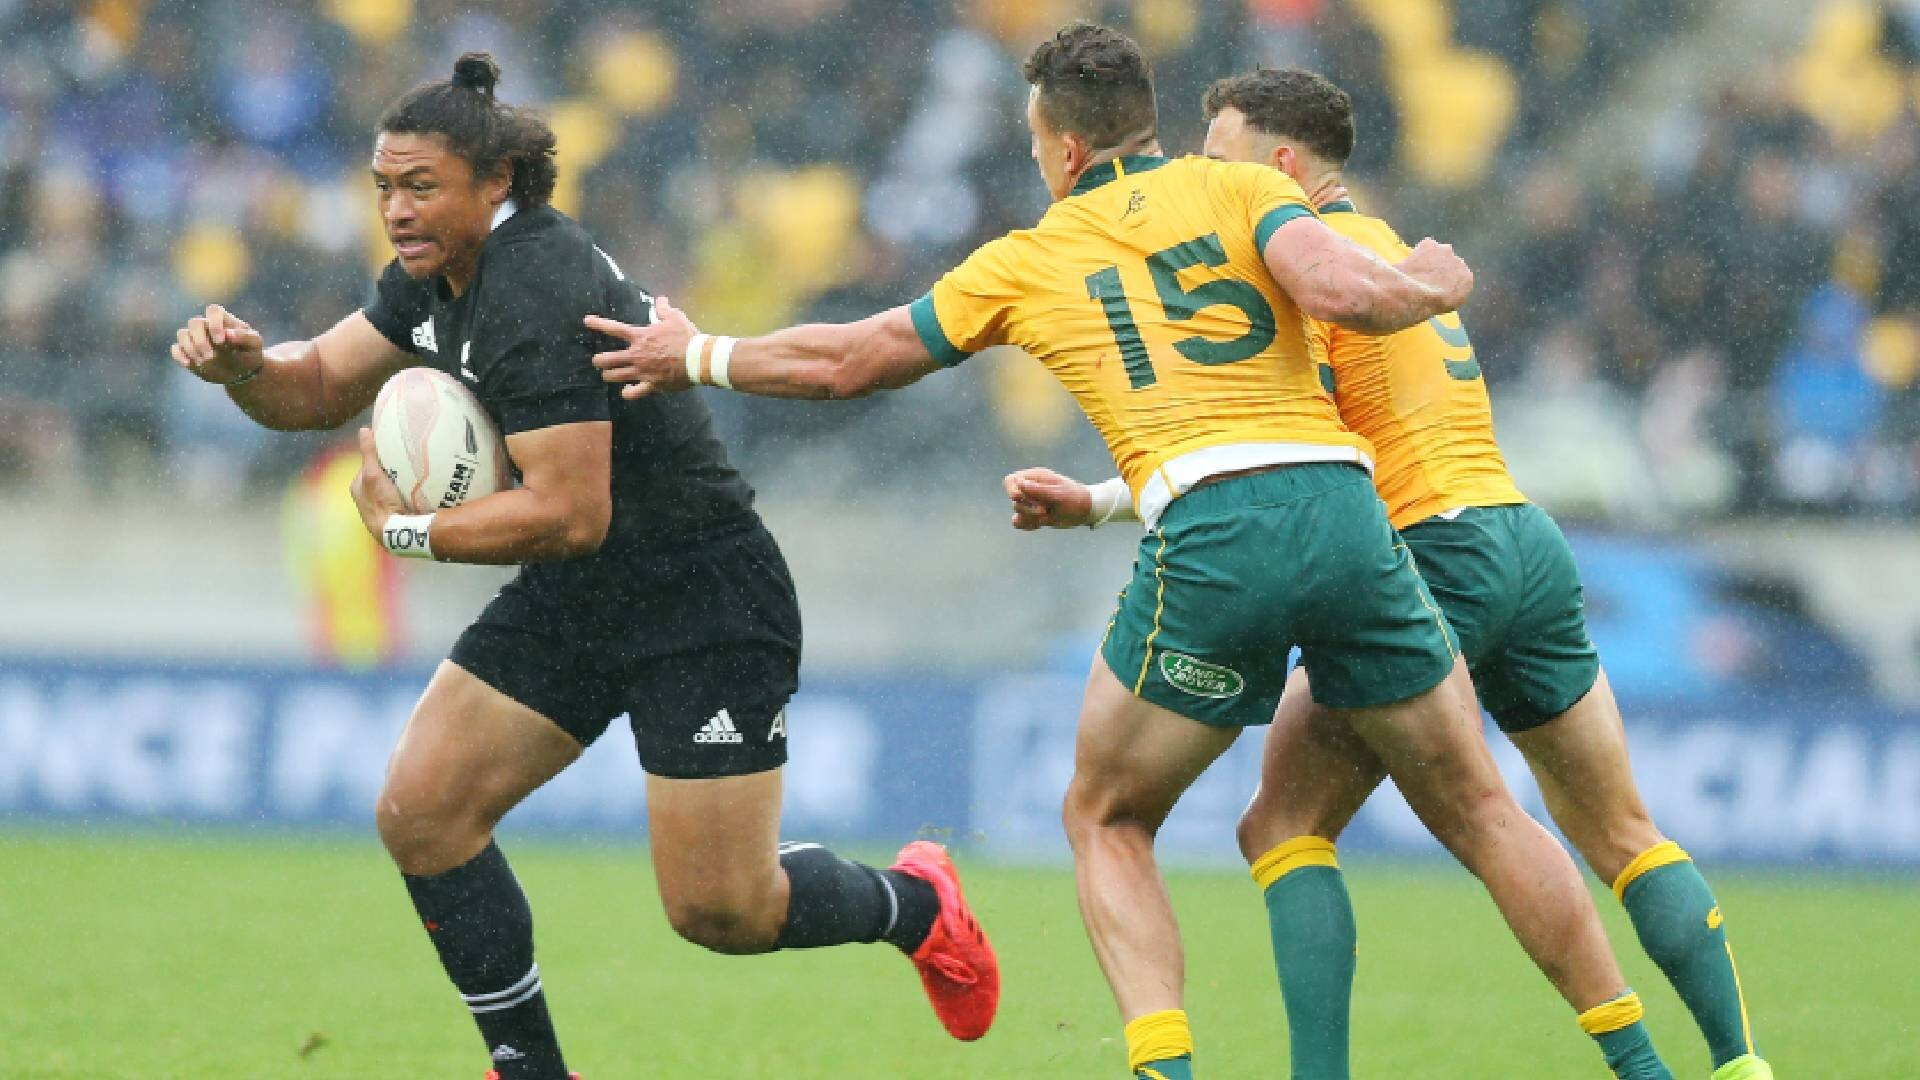 'Did I just lose us the game?': All Blacks star Caleb Clarke opens up on why his 'heart sank' in 'rollercoaster' test debut